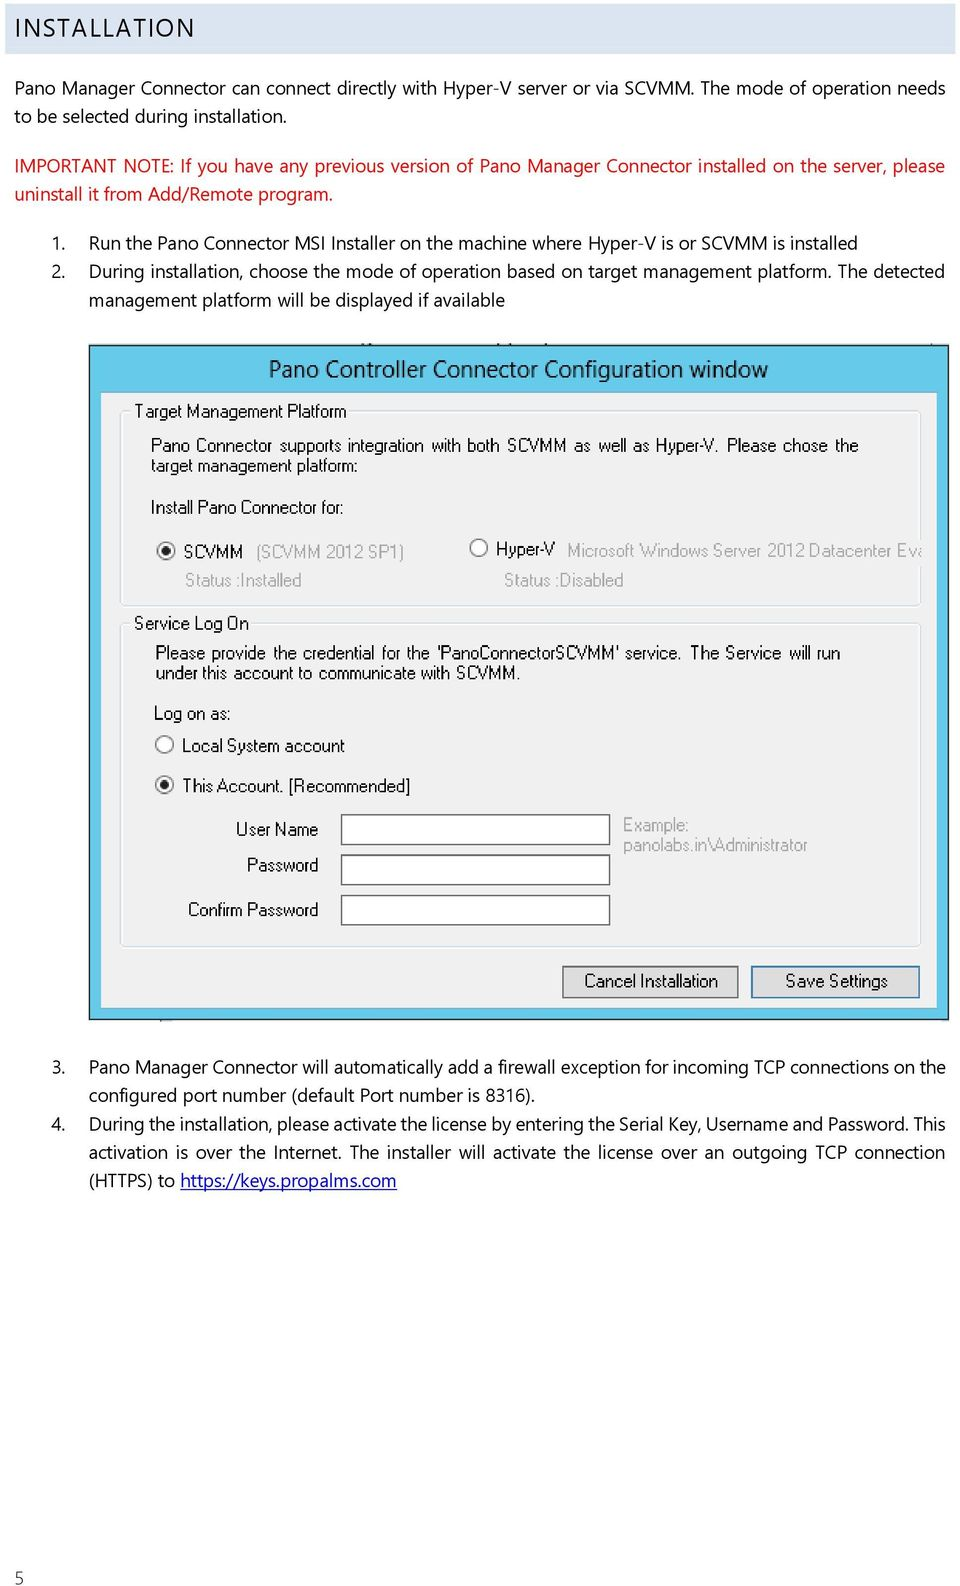 Run the Pano Connector MSI Installer on the machine where Hyper-V is or SCVMM is installed 2. During installation, choose the mode of operation based on target management platform.